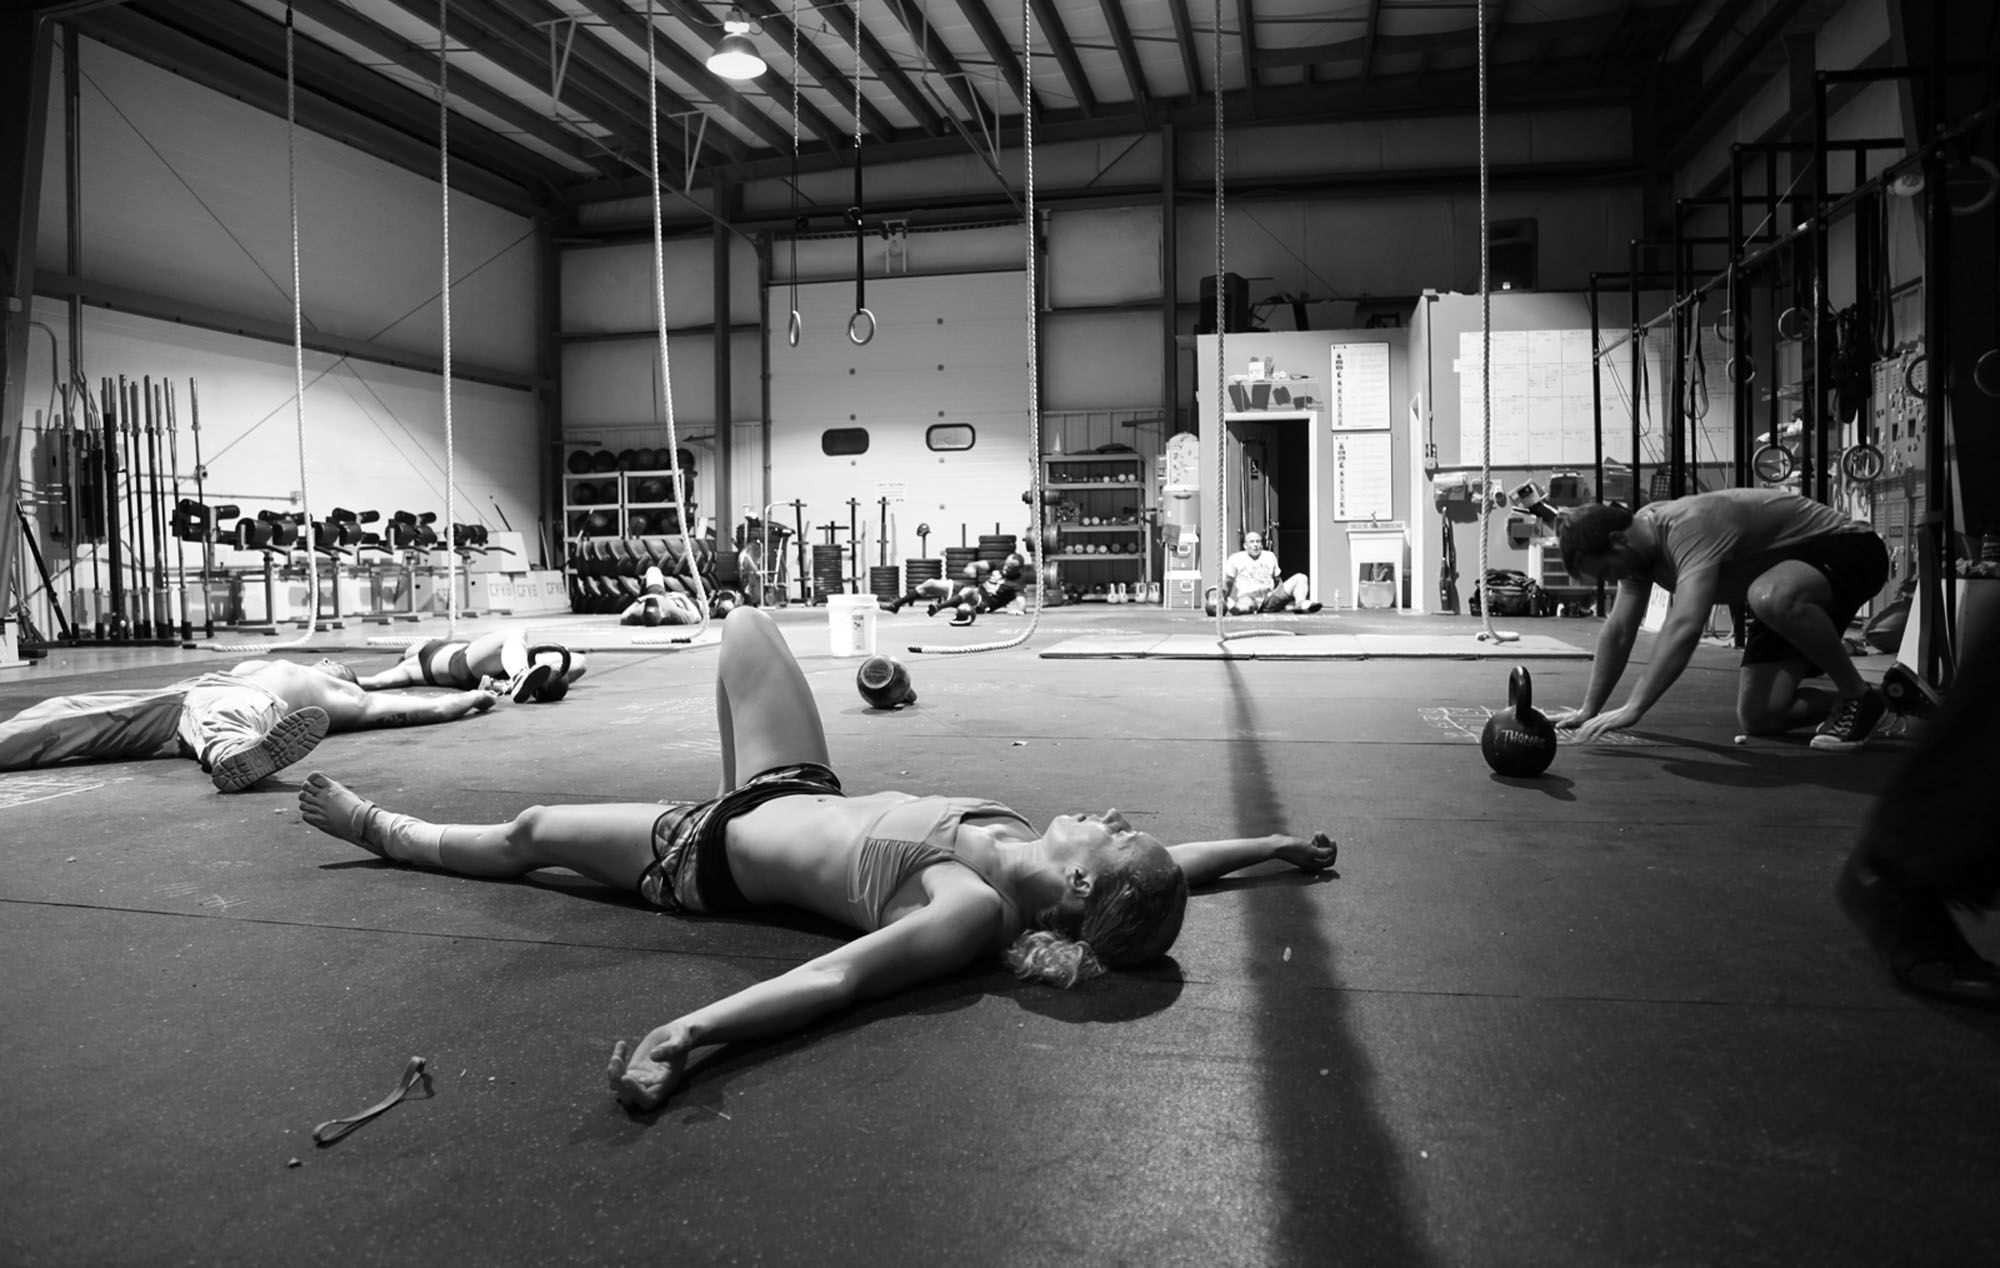 fellowship forged in suffering #crossfit | Crossfit | Fitness